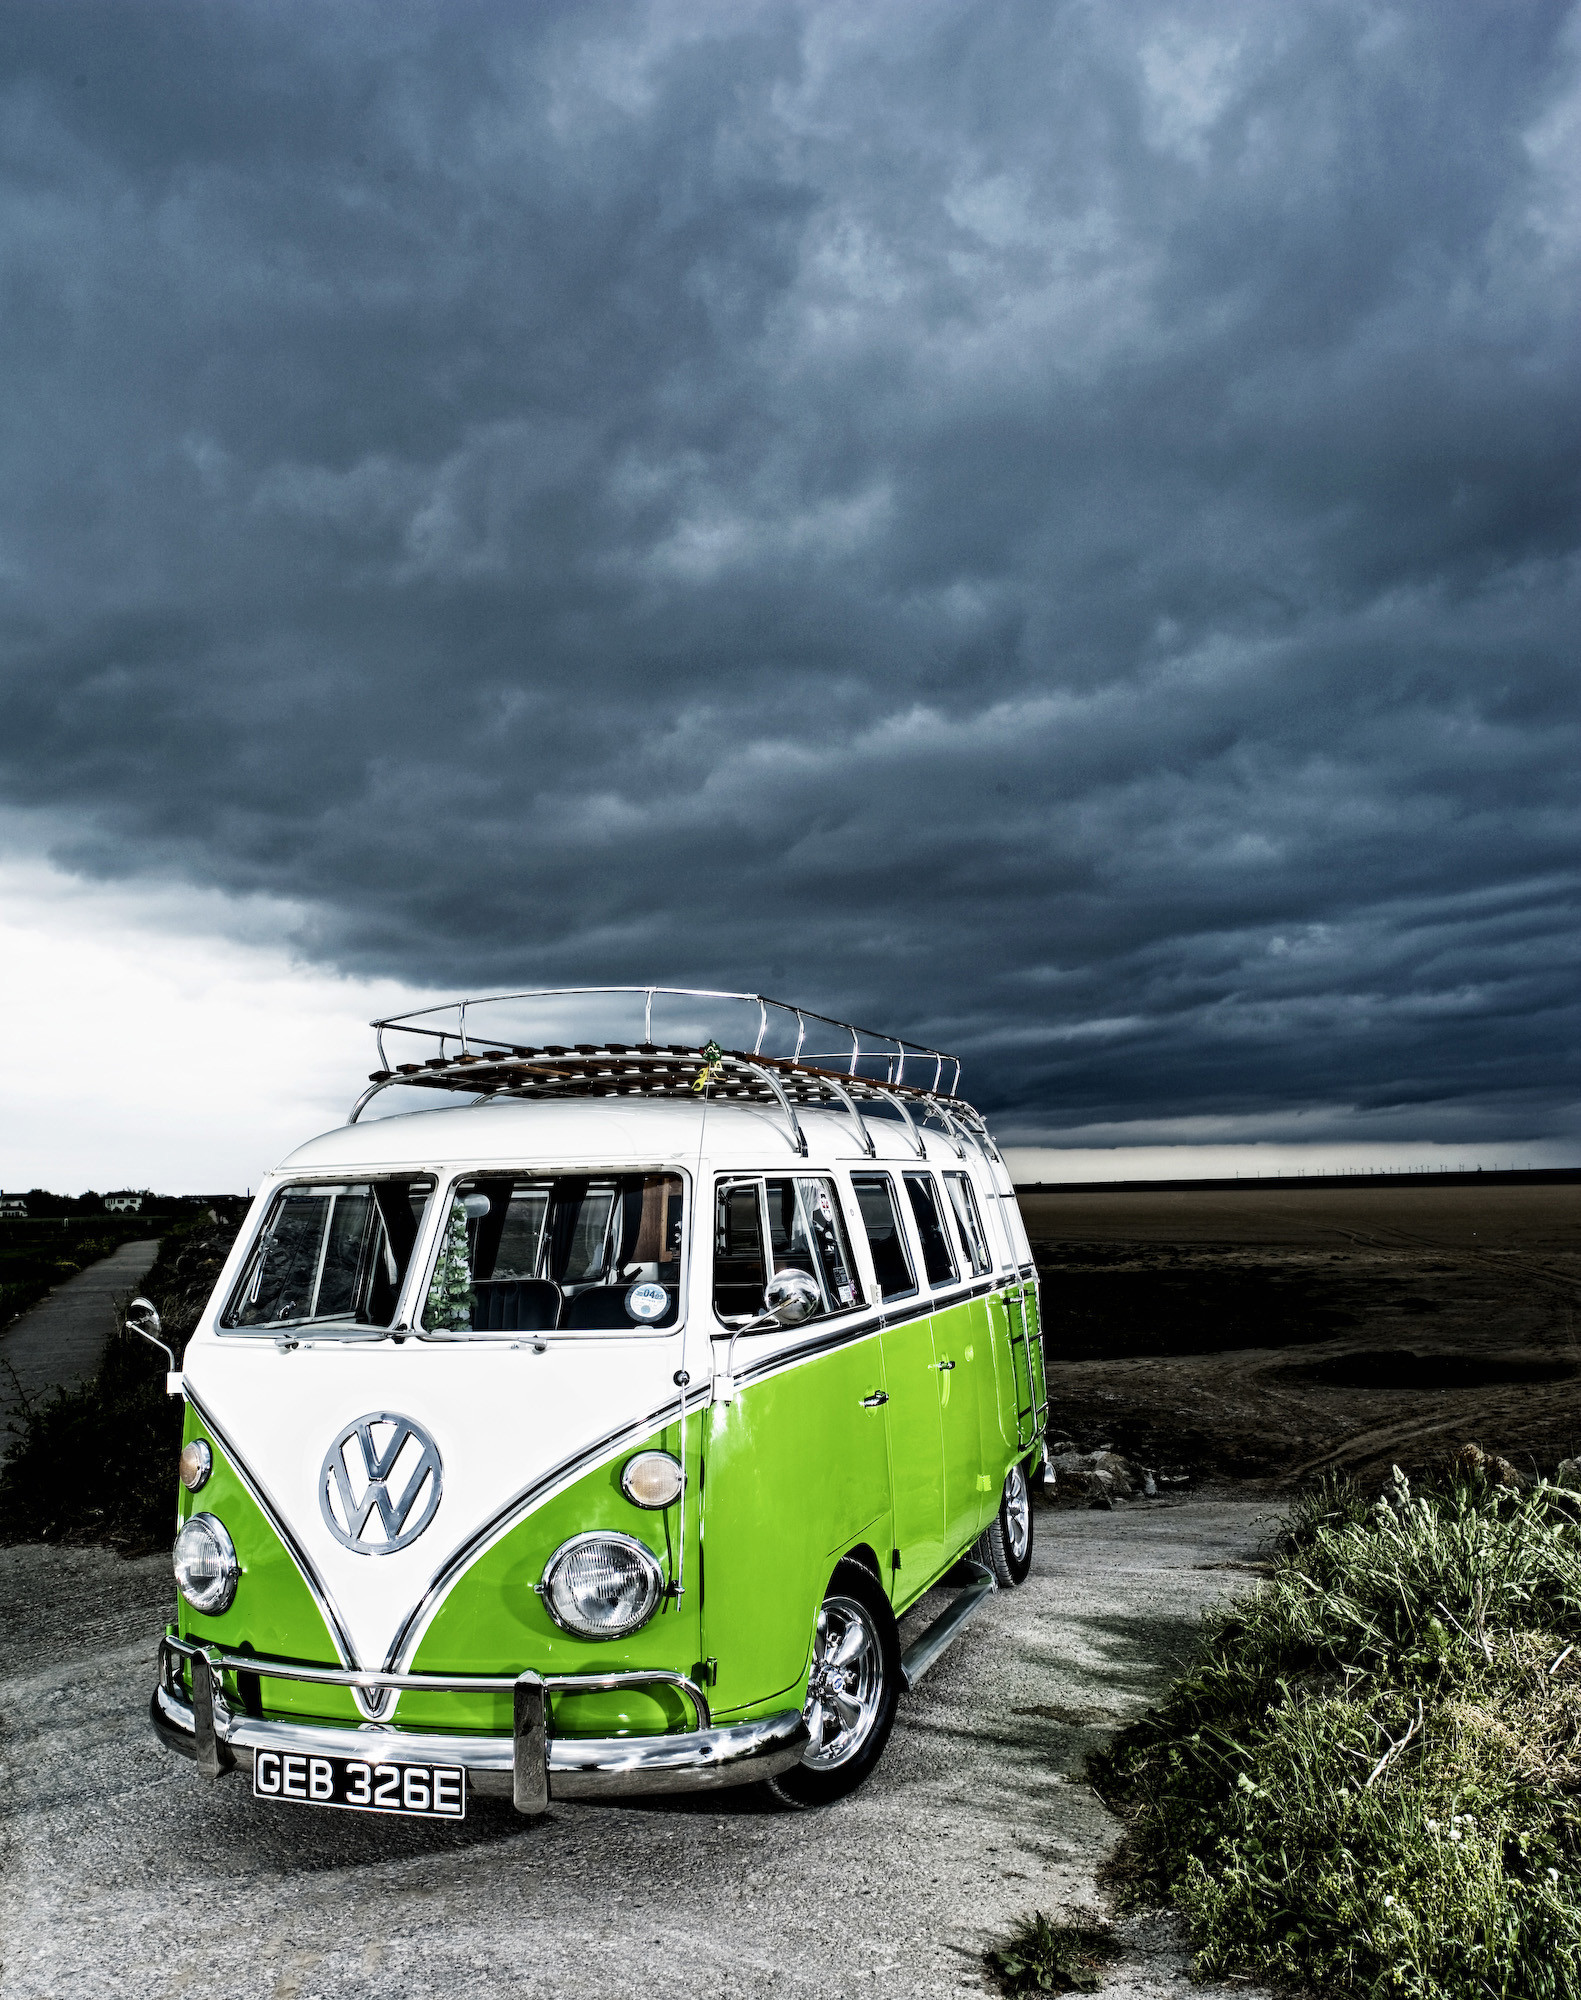 <b>Volkswagen Bus Wallpaper</b> Phone #Wf9 | Cars |